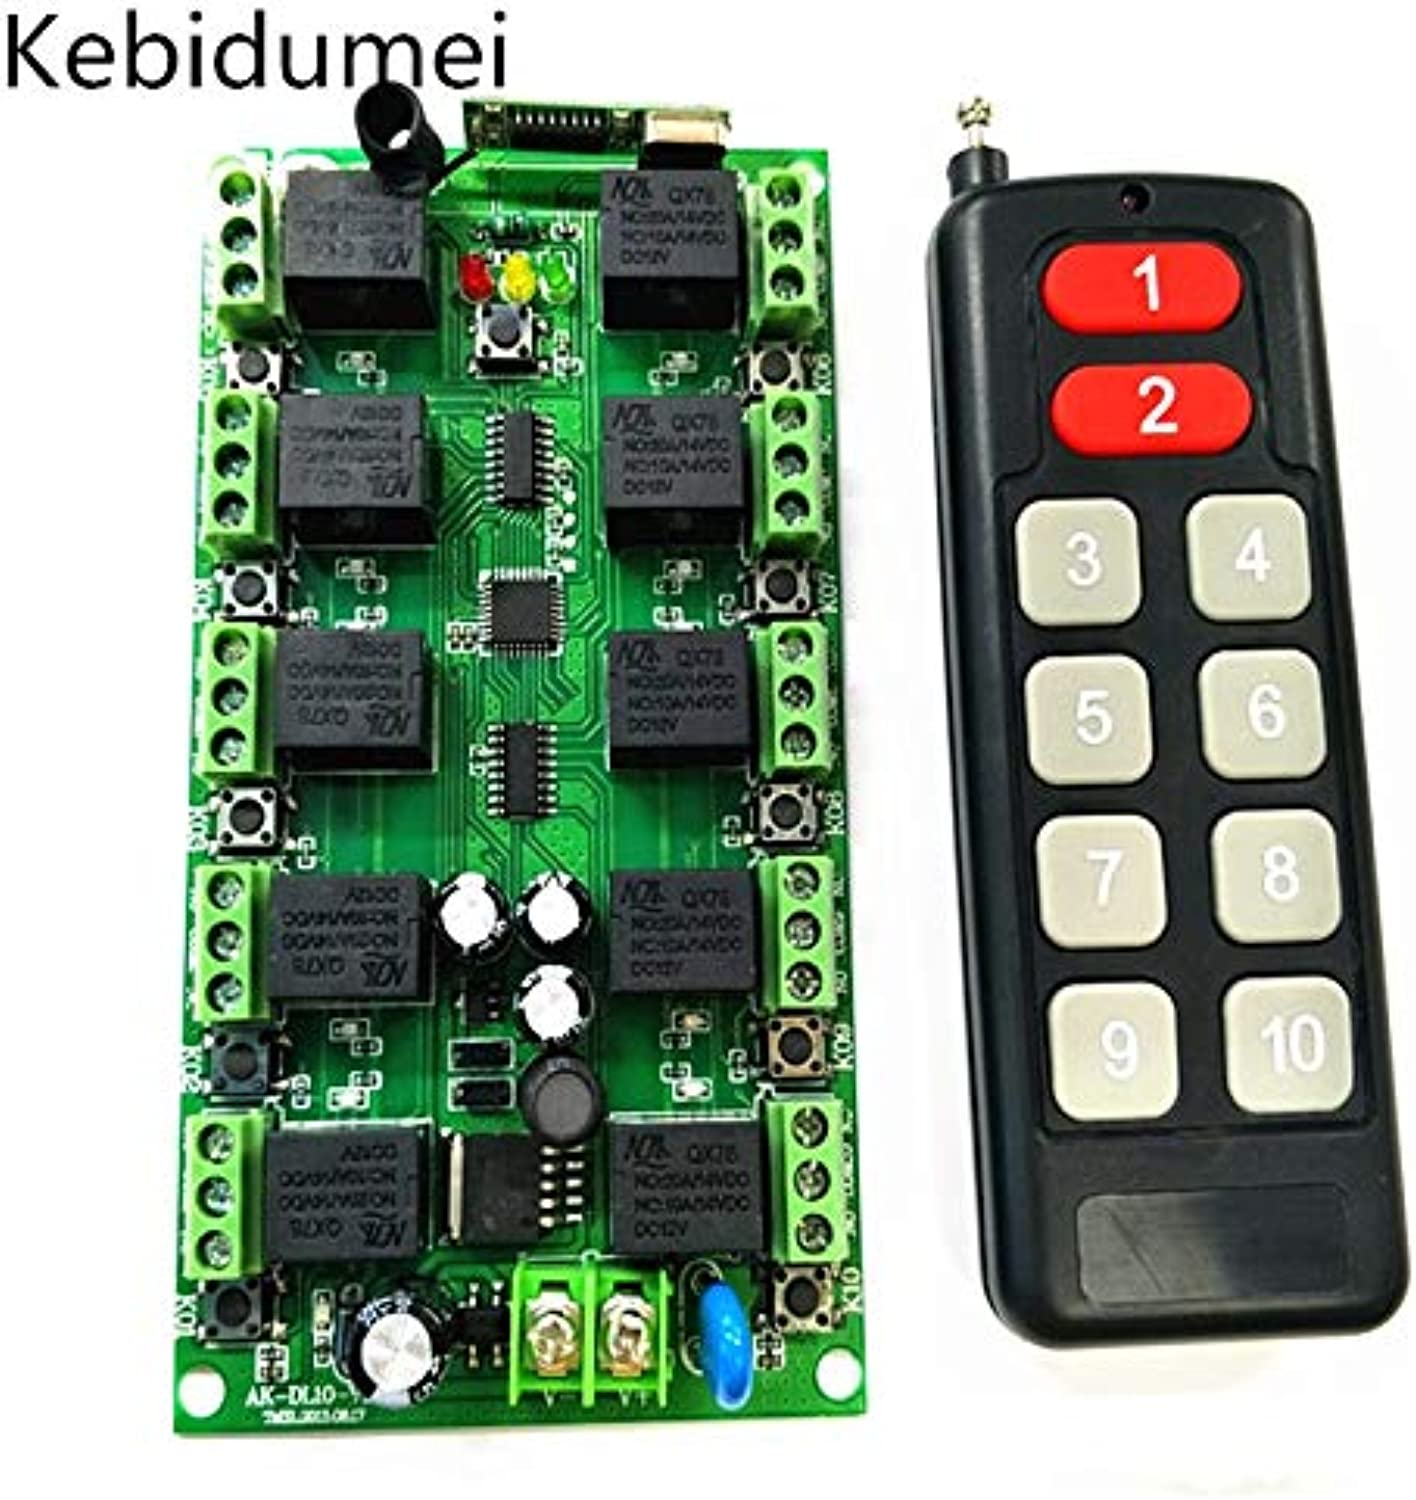 Kebidumei DC 12V 10 CH Channels 10CH RF Wireless Remote Control Switch System Transmitter + Receiver Individual Learning Code